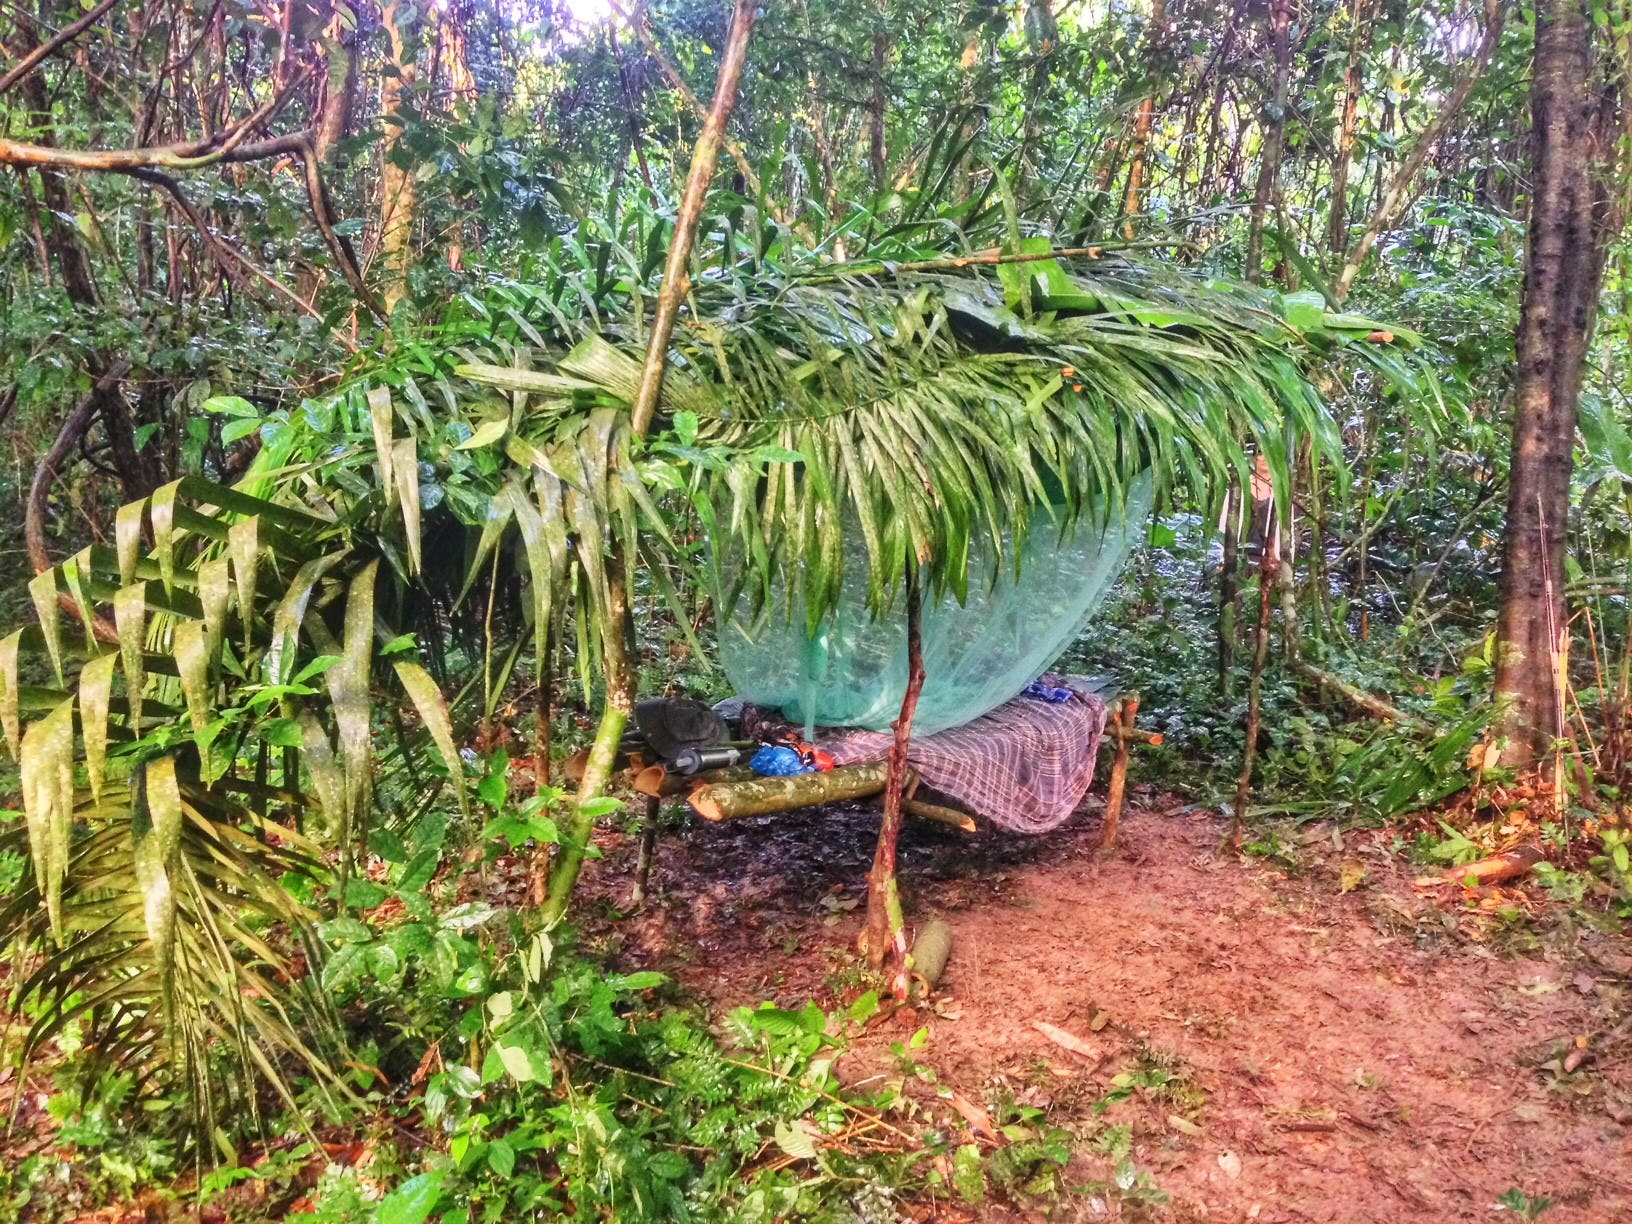 A shelter Abdullah sat up in to sleep in the Amazon Jungle. (Supplied)